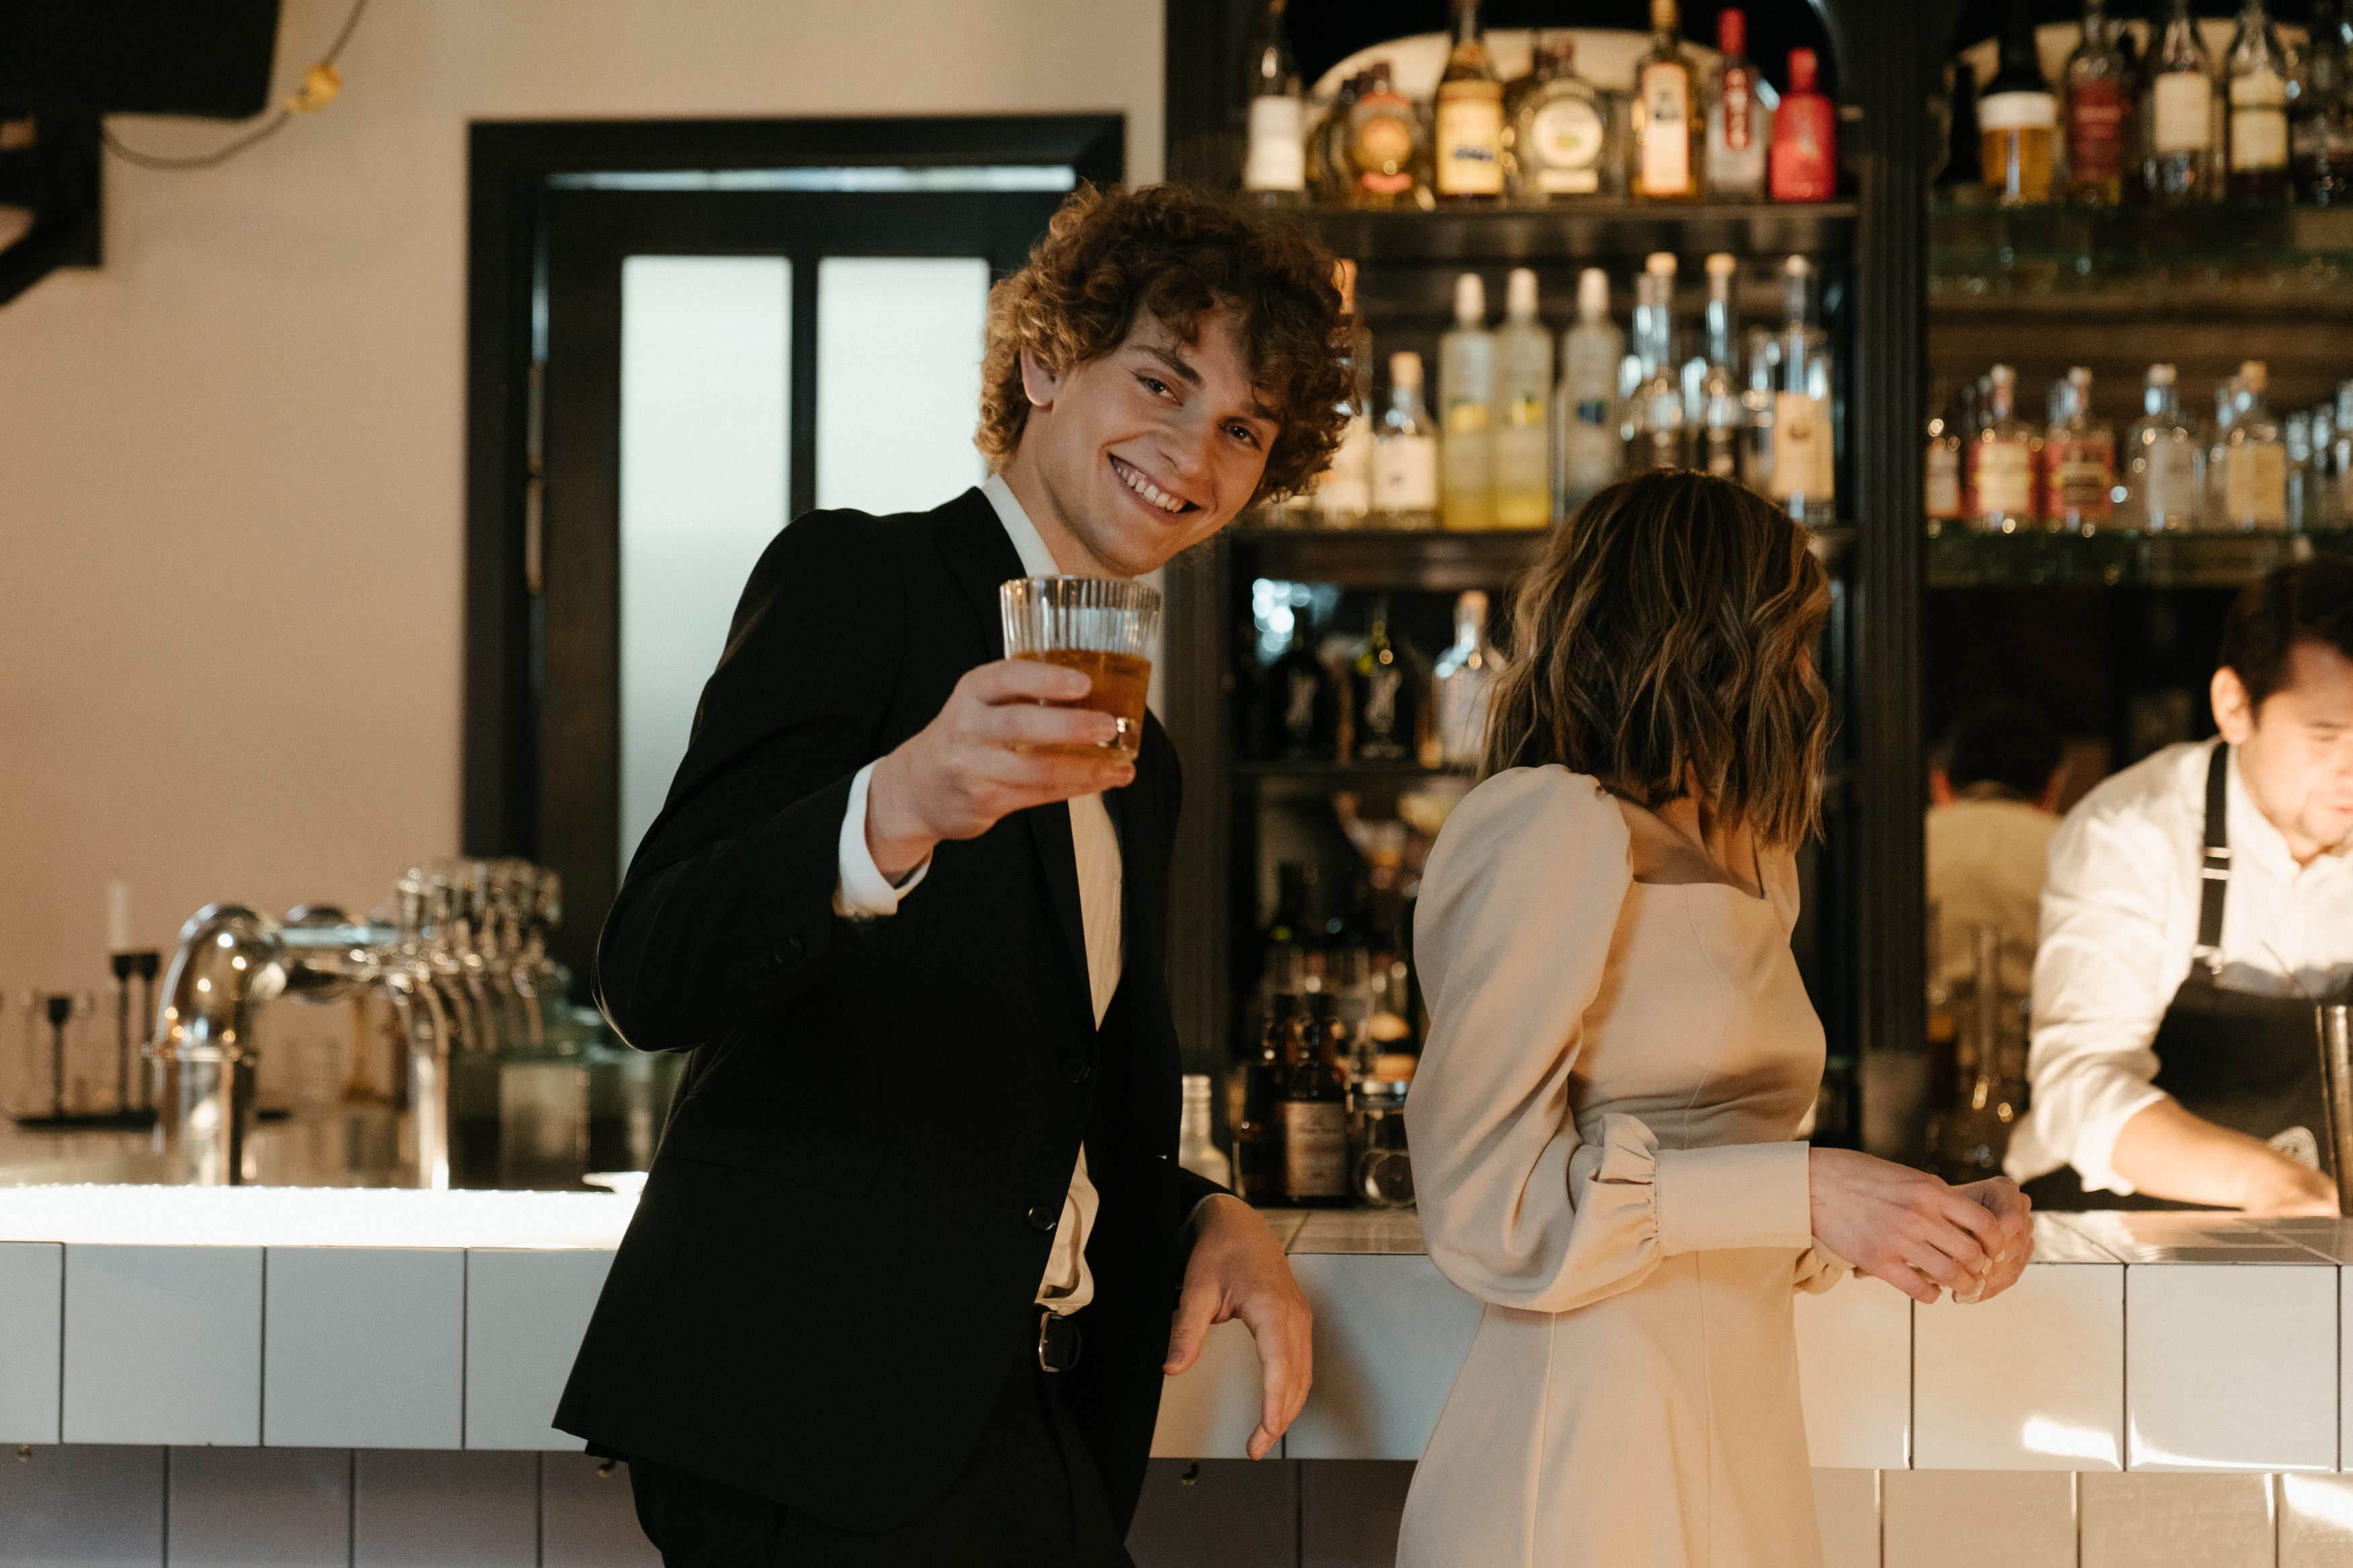 Young man in a bar grinning at the camera while holding a glass of beer